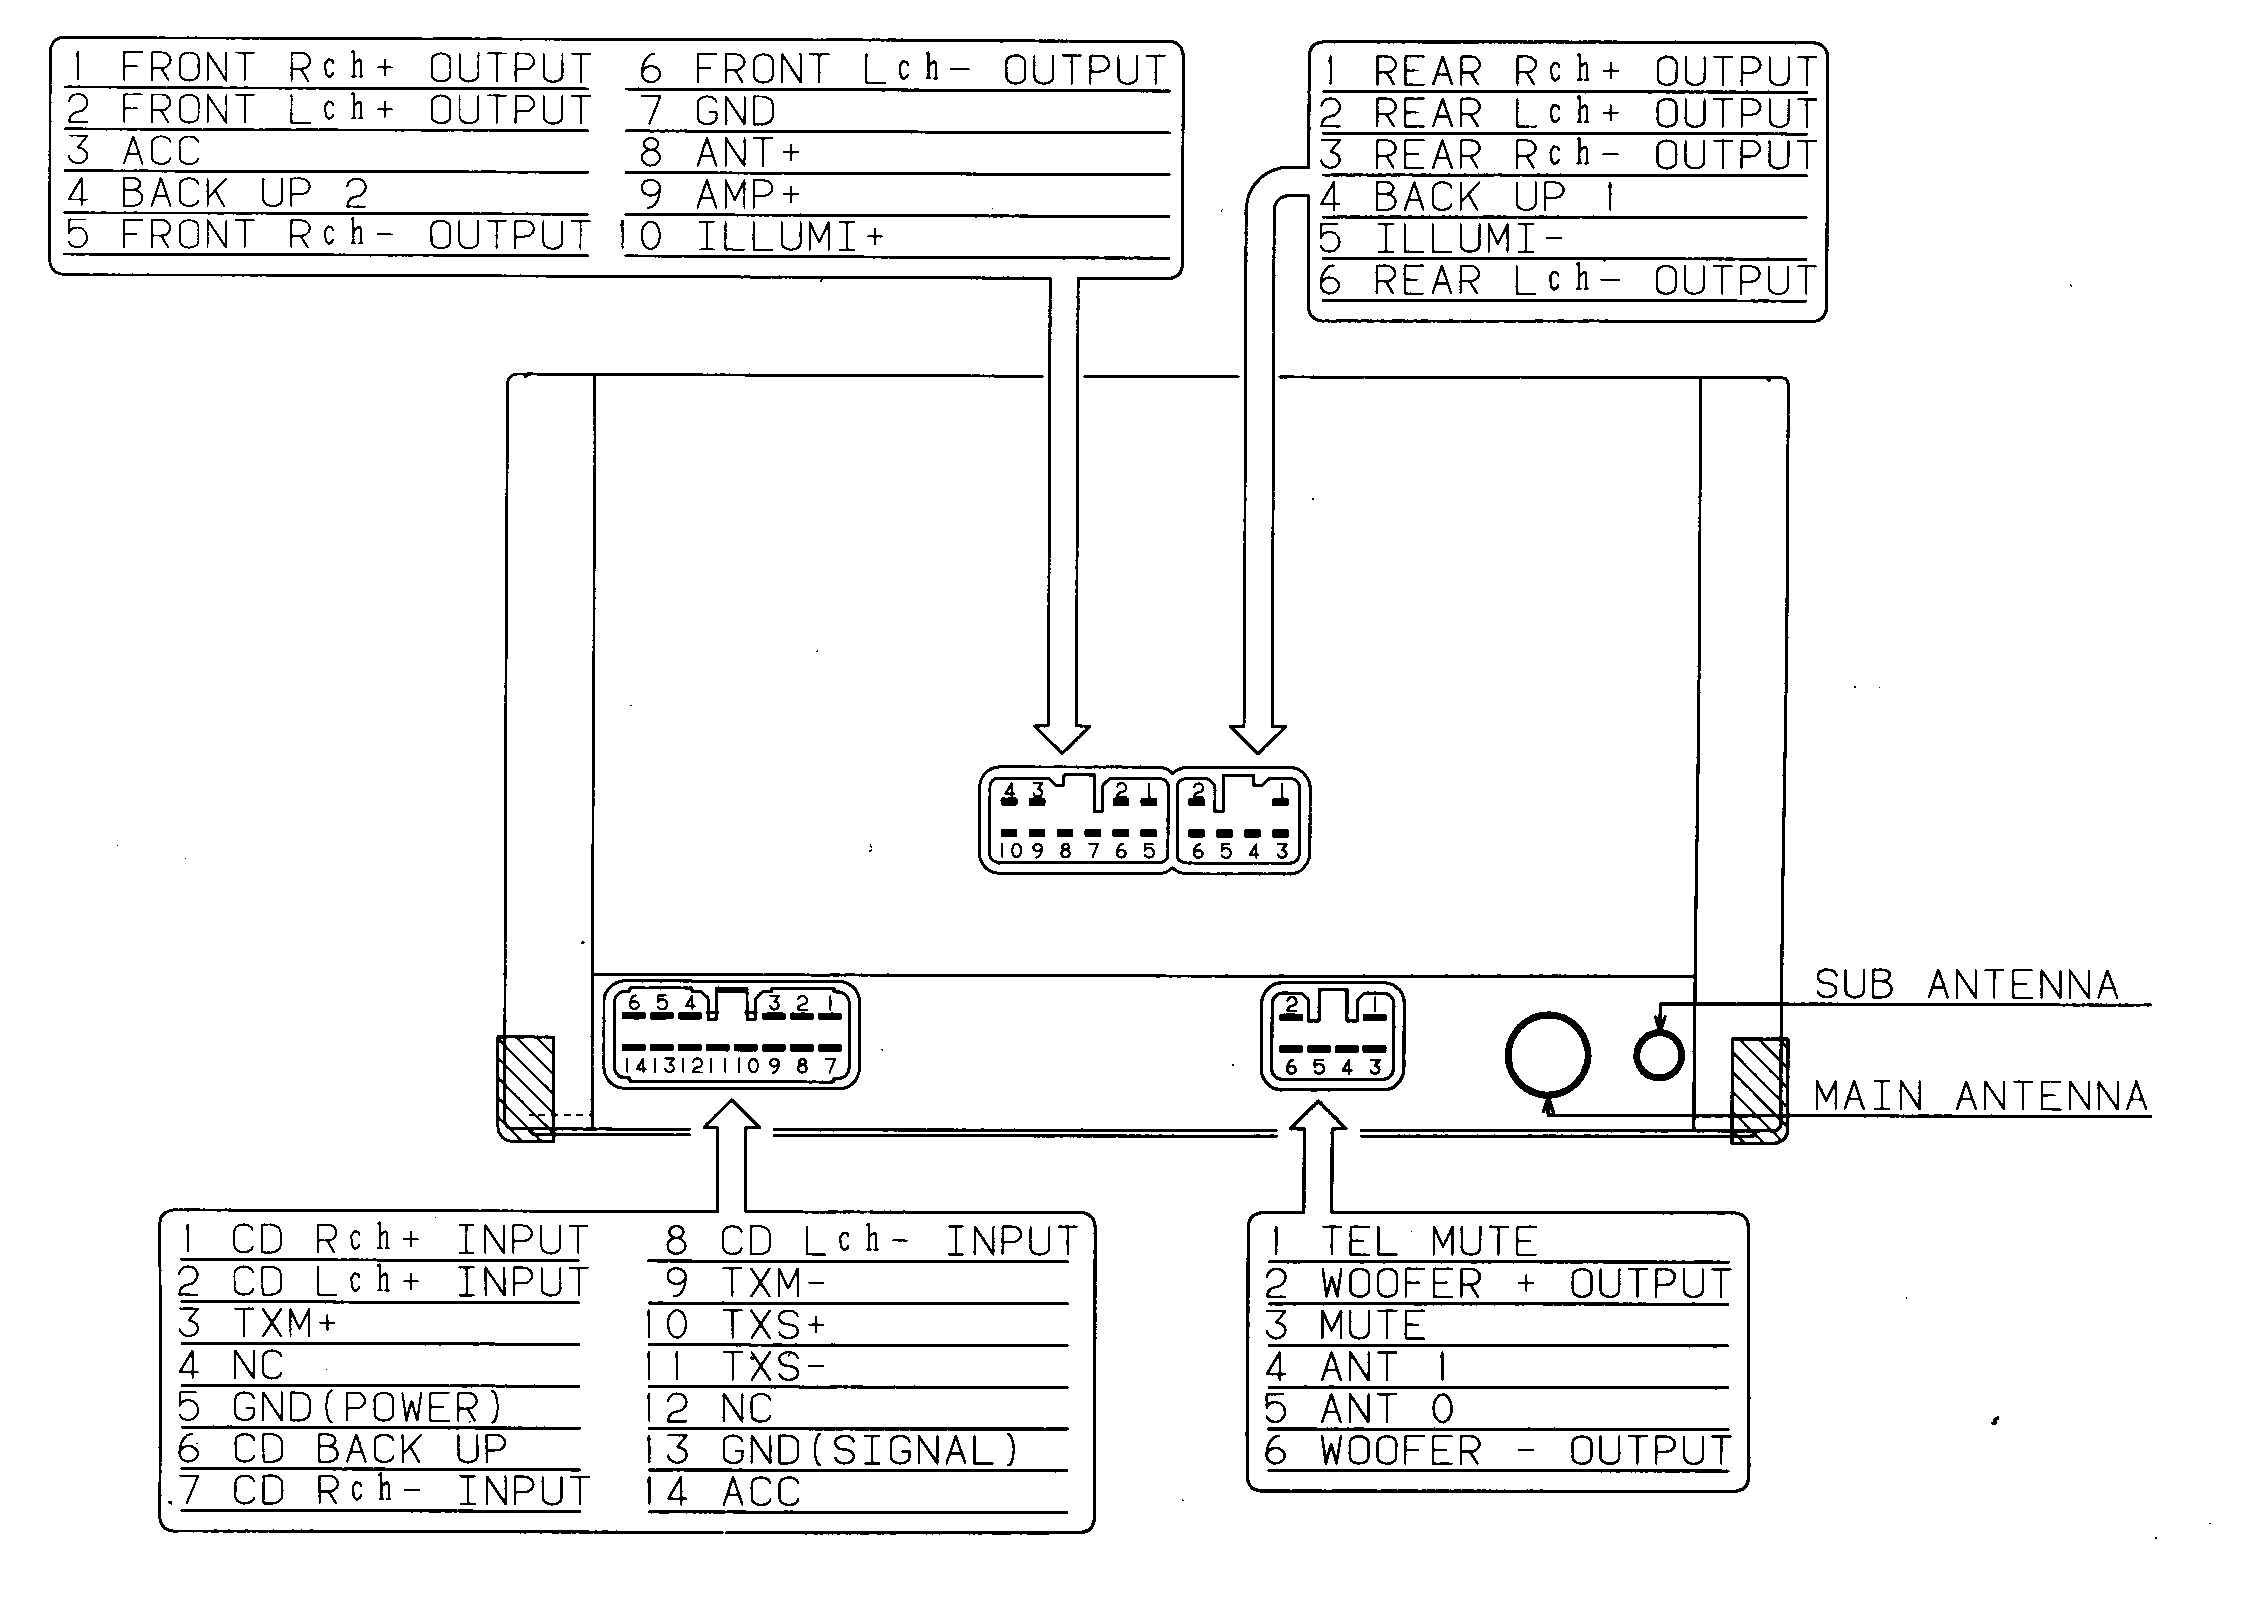 lexus car radio stereo audio wiring diagram autoradio connector lexus car stereo wiring diagram